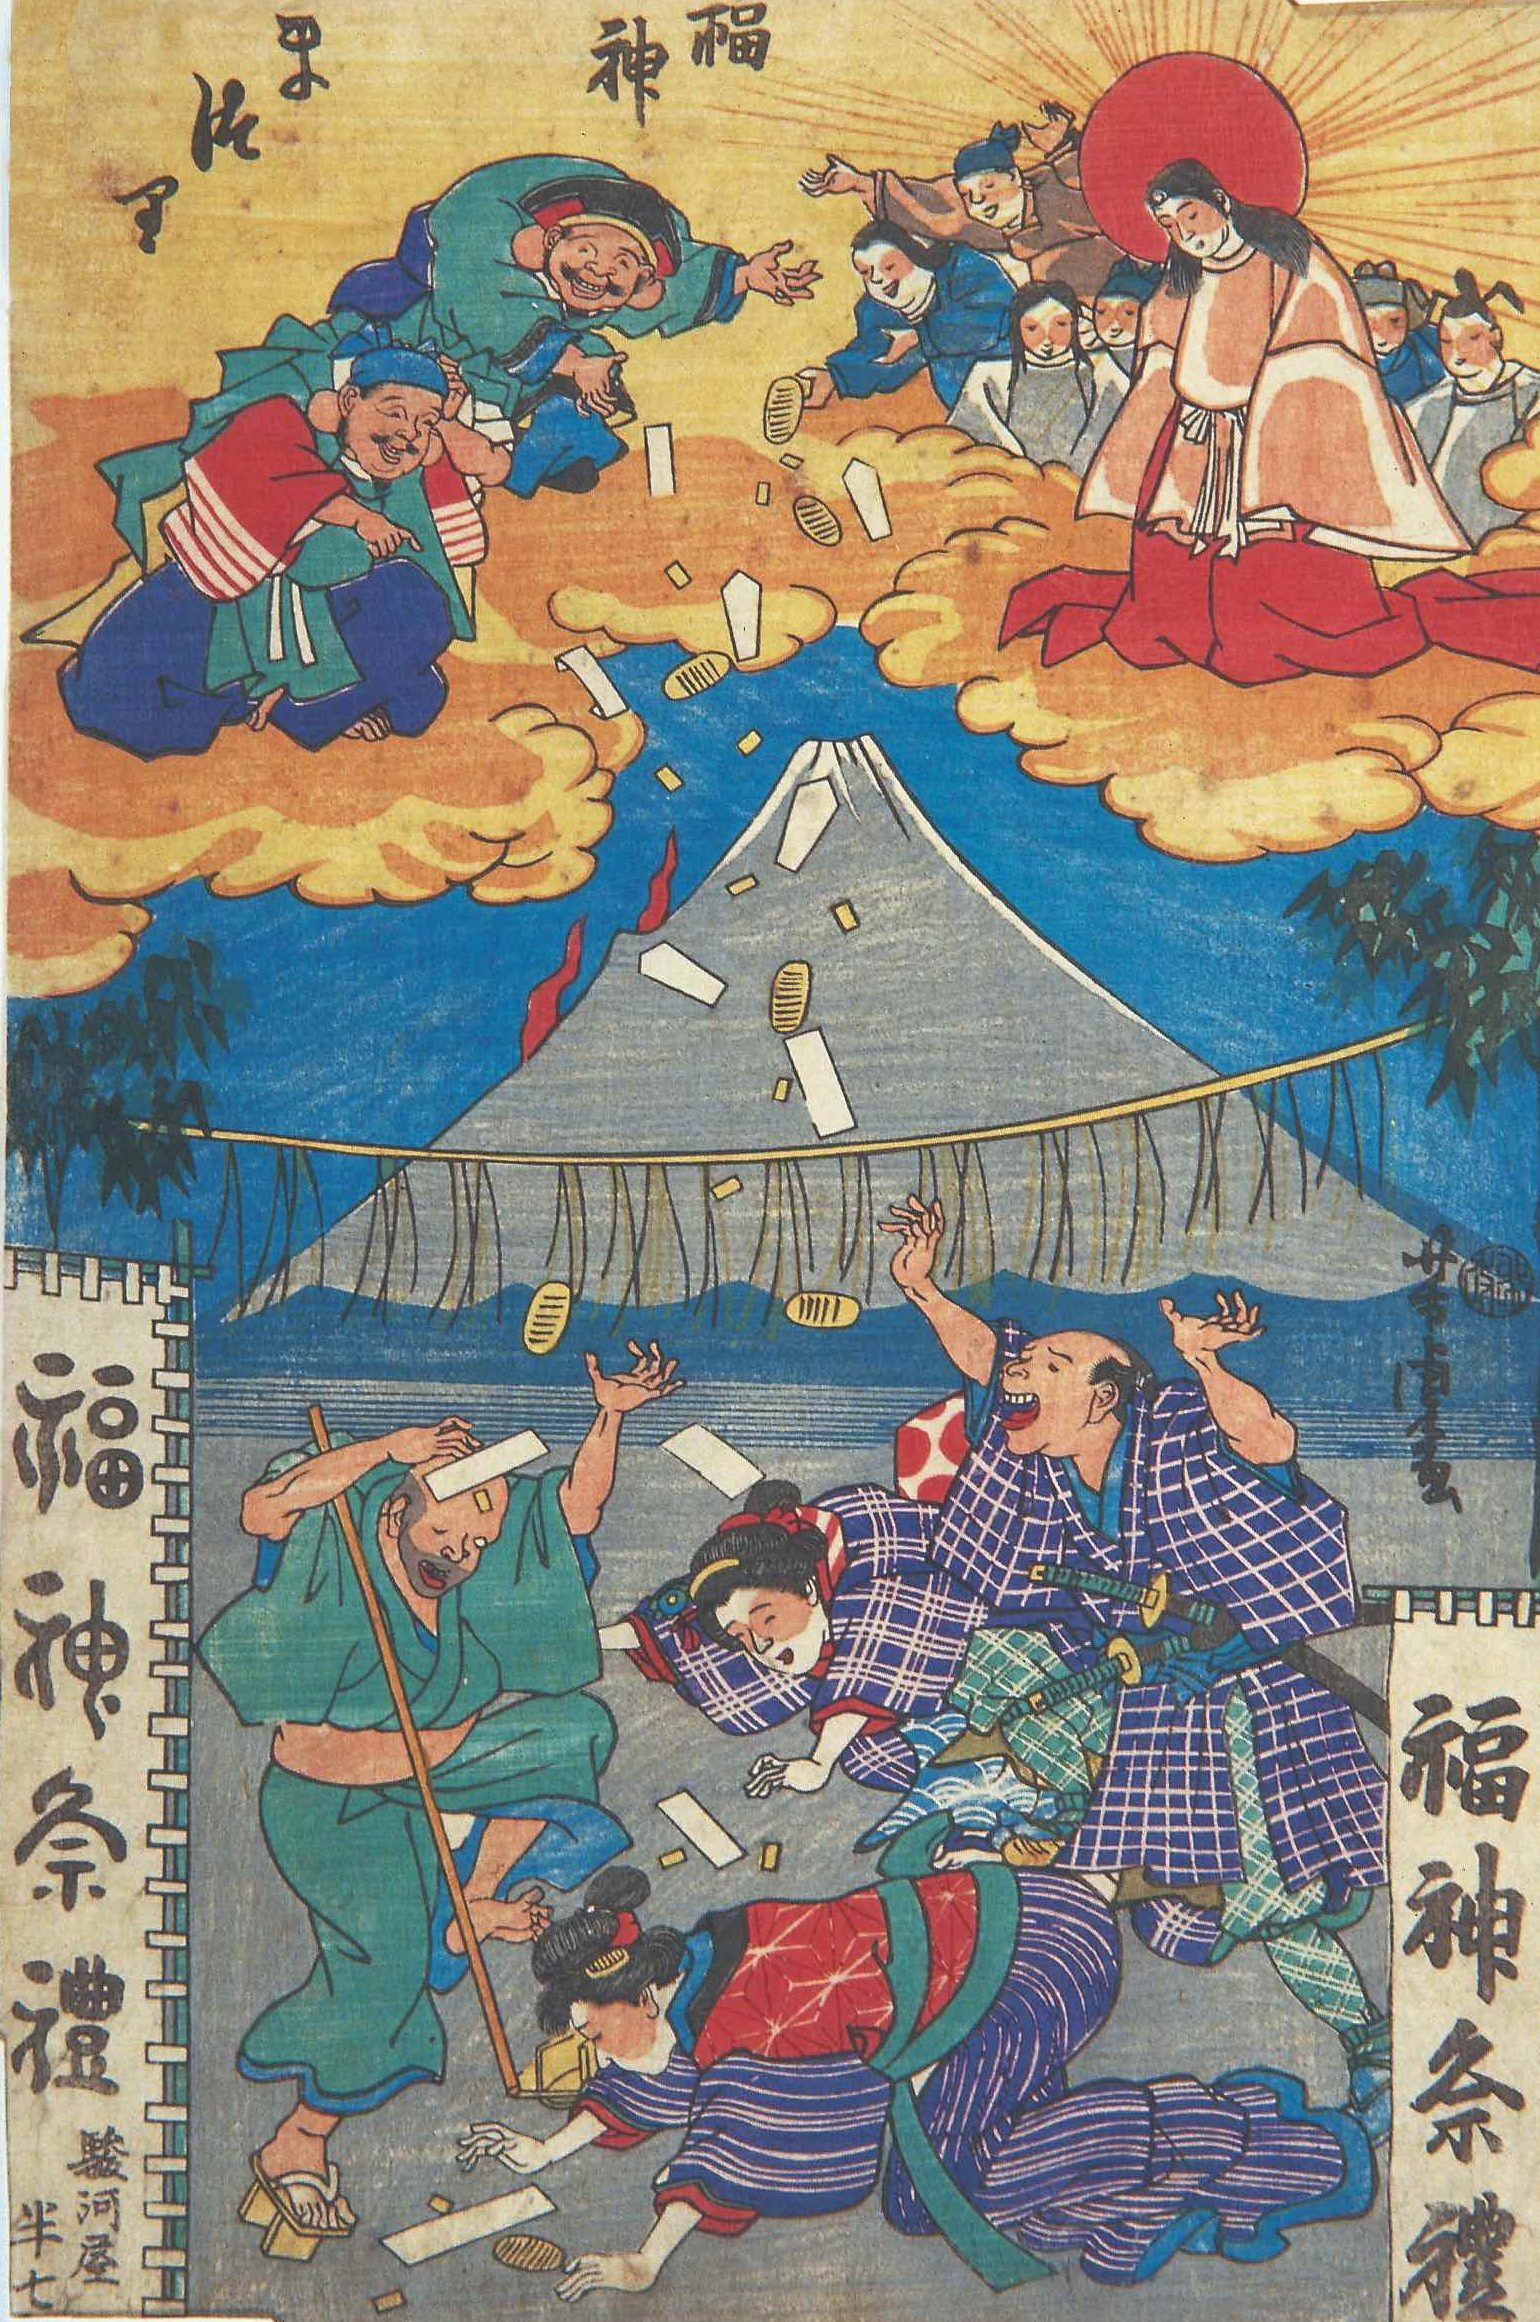 A print depicting gods of fortune raining gold pieces and lucky charms down on a group of commoners with Mt. Fuji in the background.